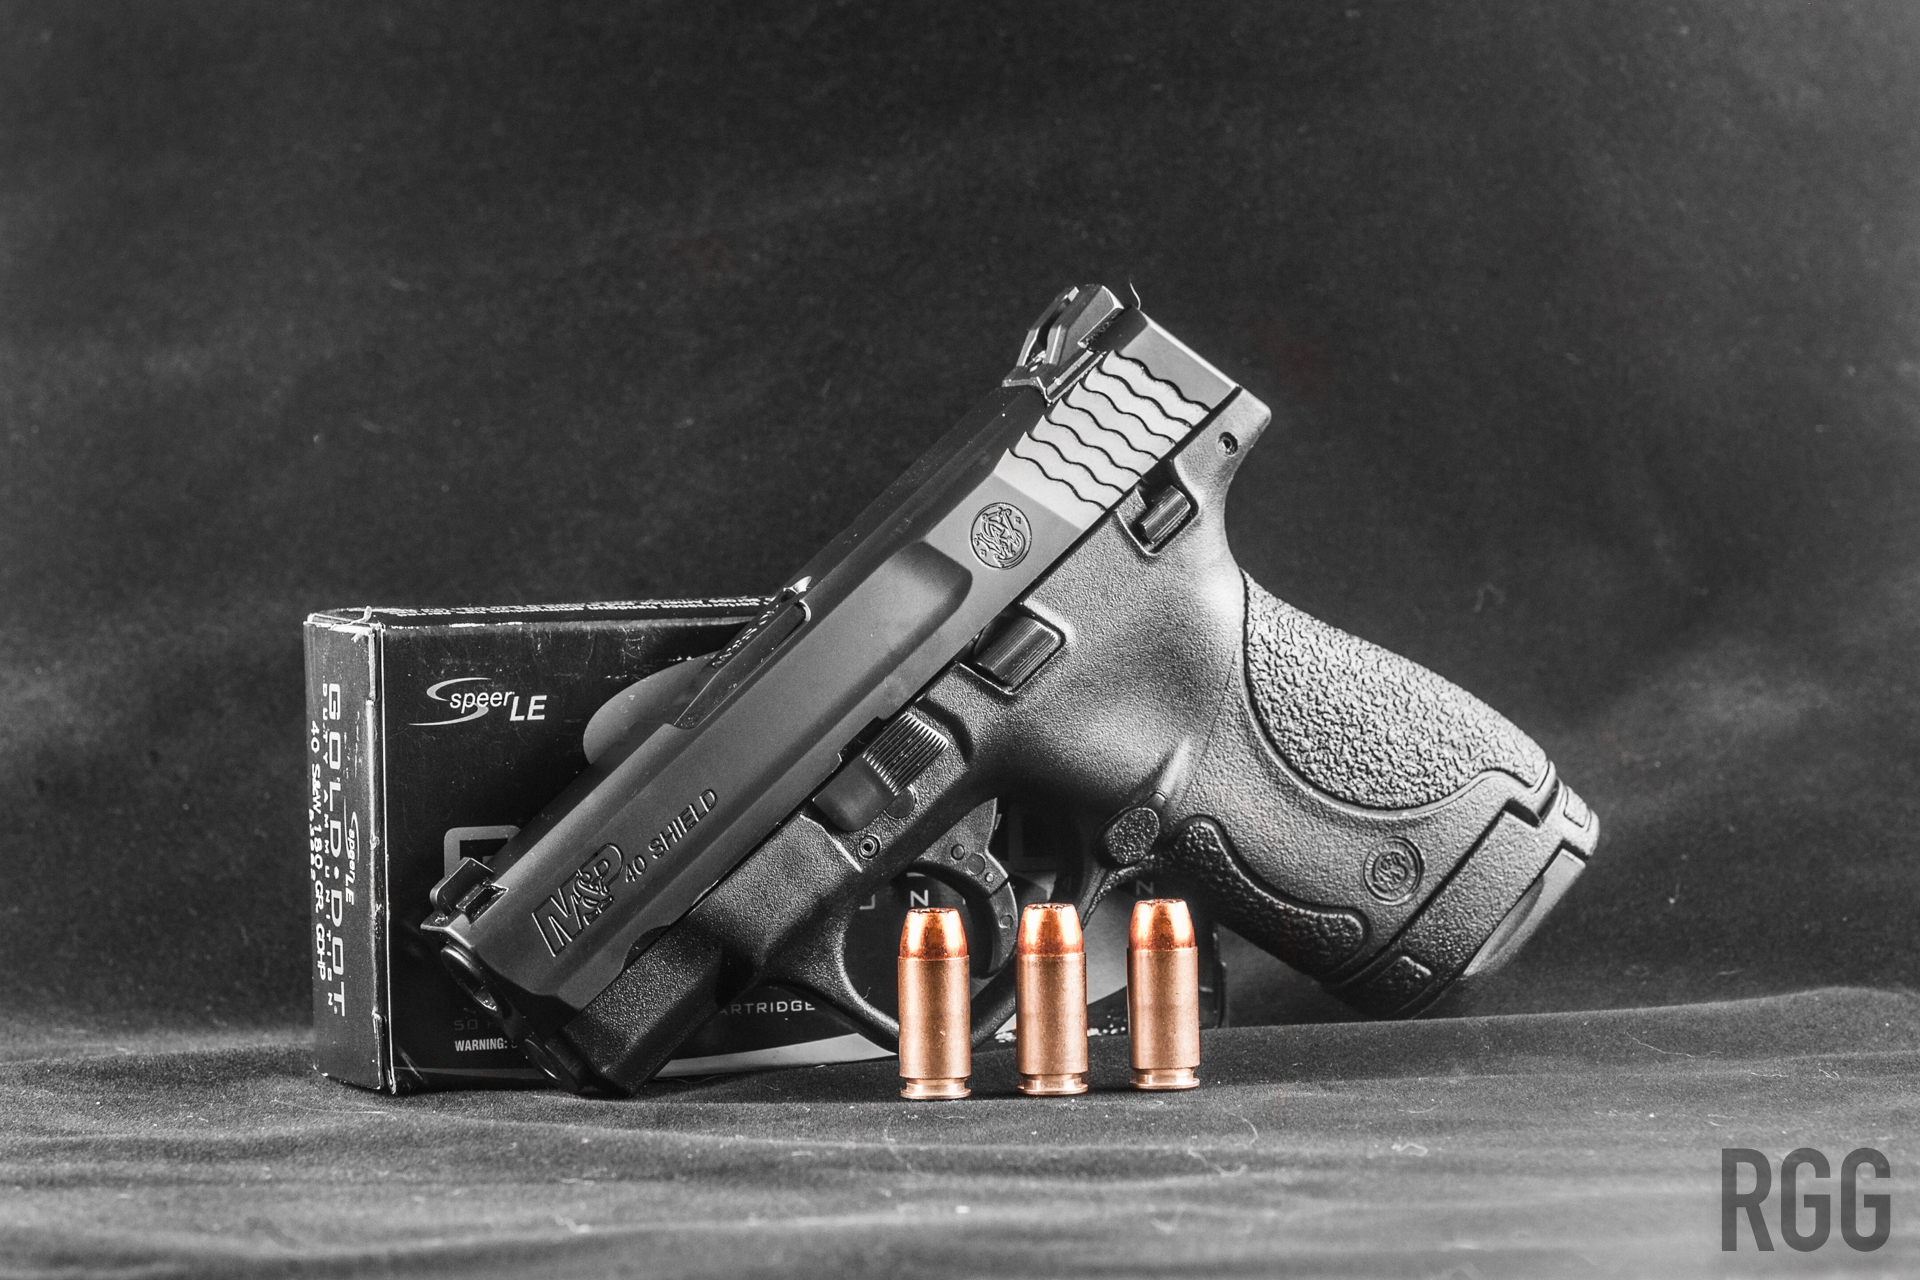 The Smith & Wesson M&P Shield 40 - an effective subcompact pistol chambered in .40 S&W